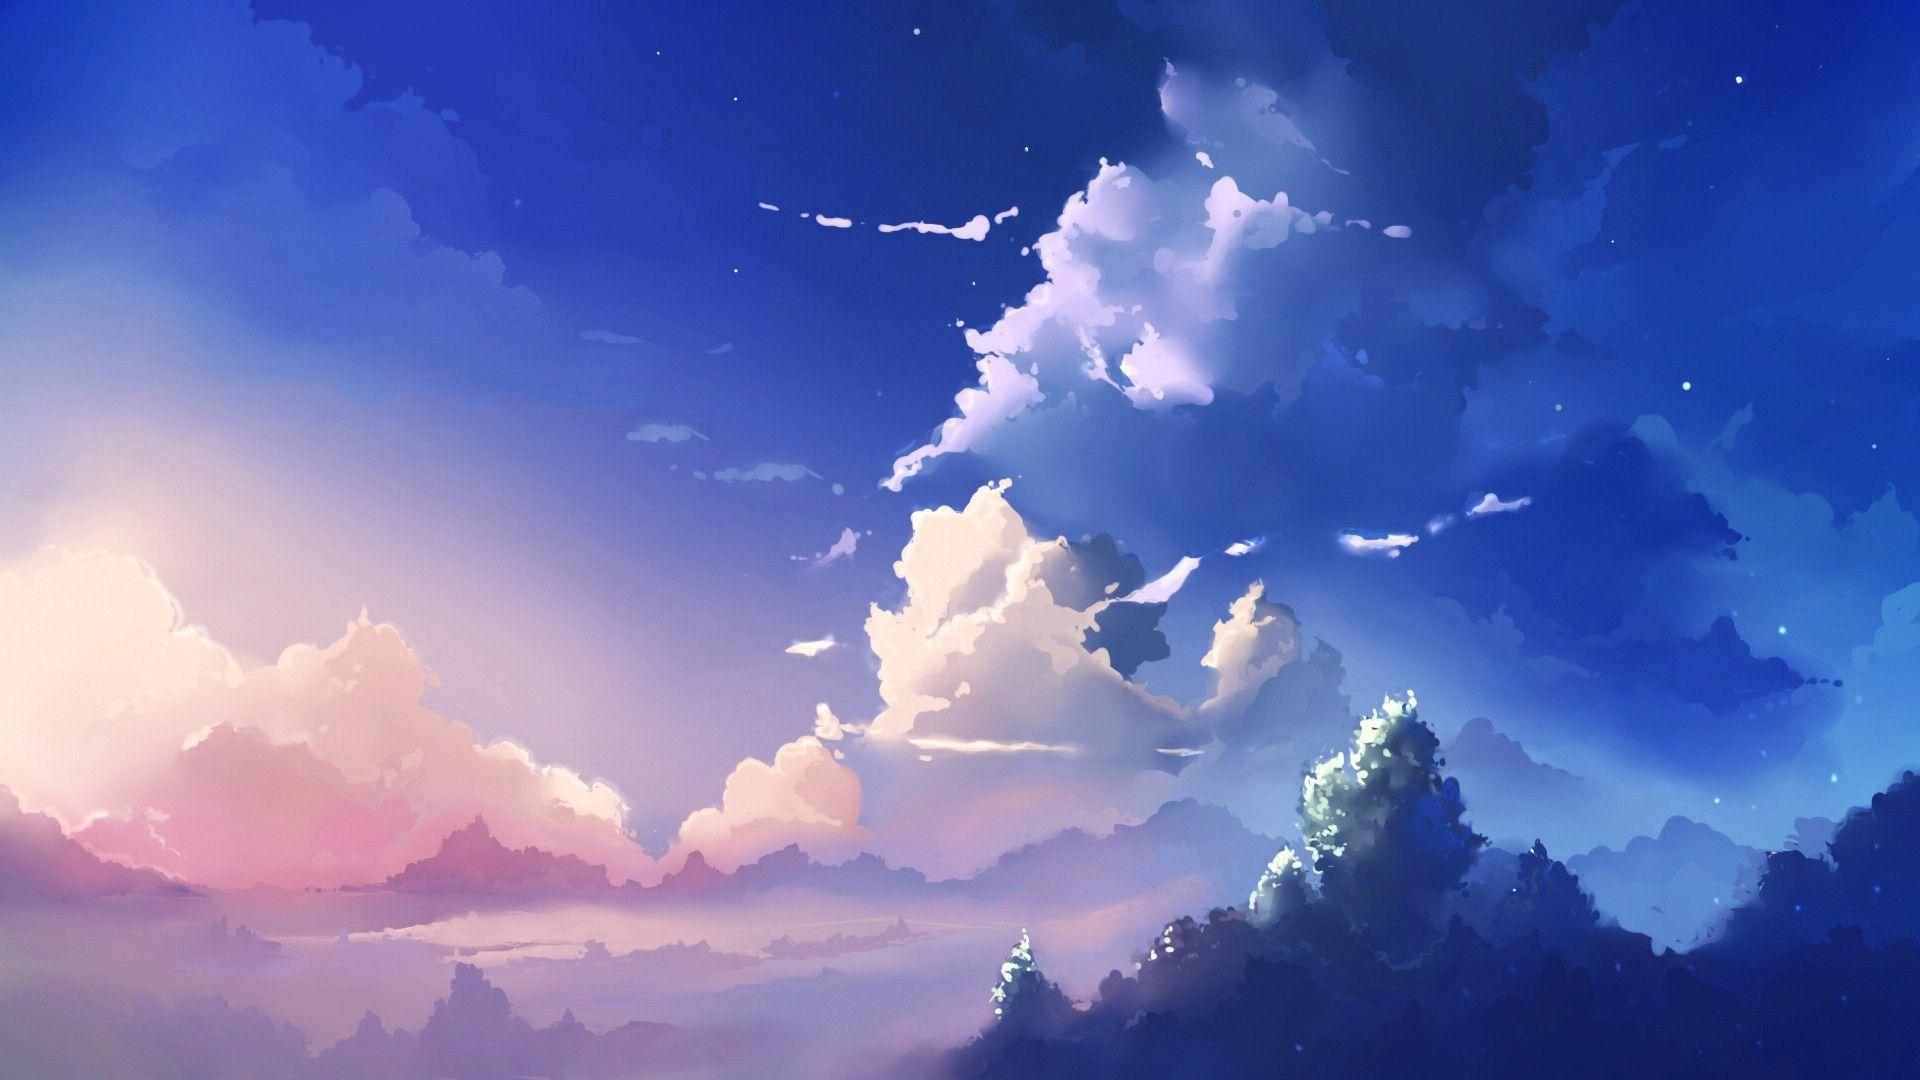 Anime sky wallpapers wallpaper cave - Anime sky background ...